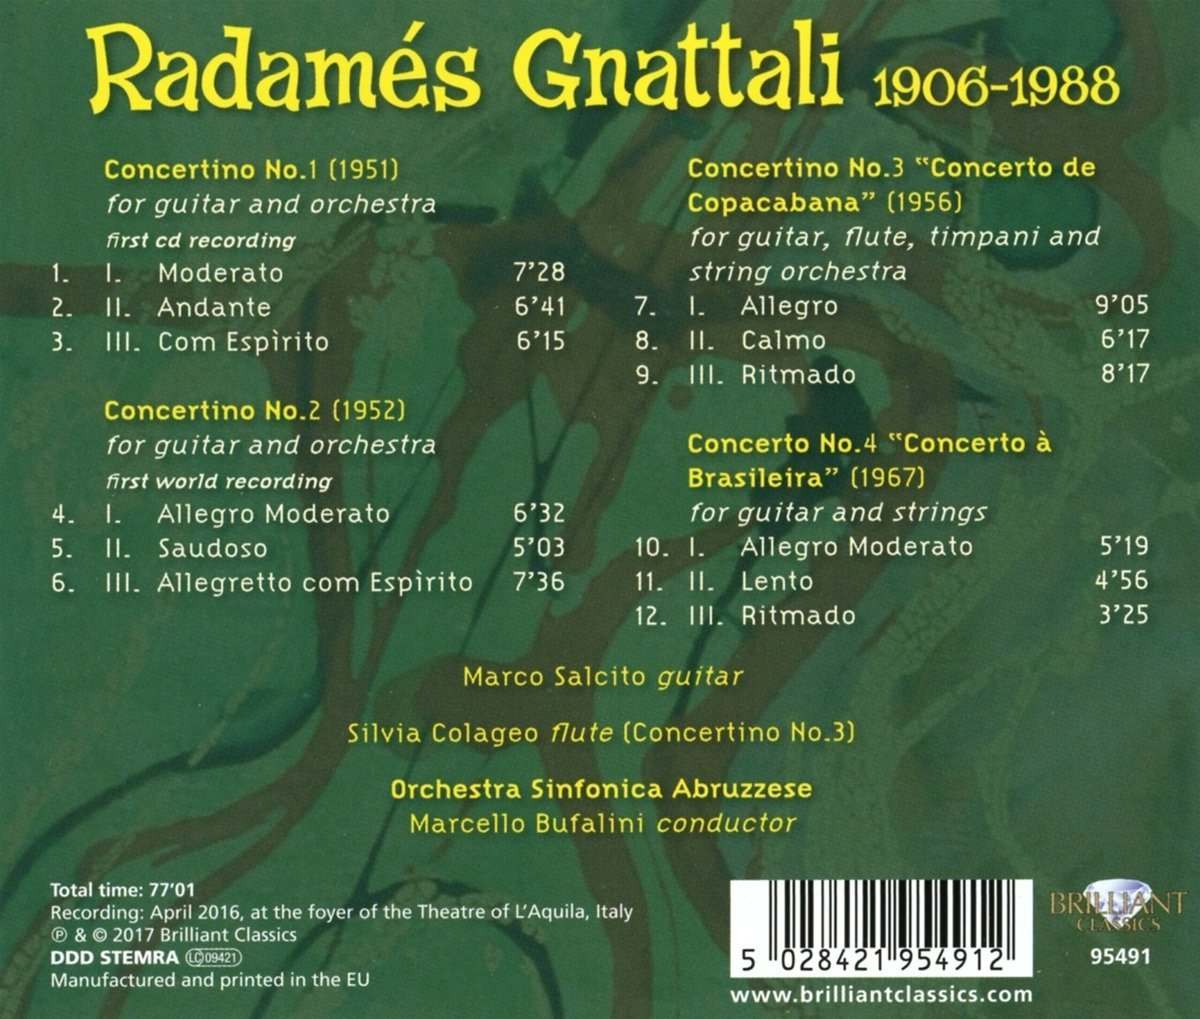 Radamés Gnattali - Concertinos for Guitar and Orchestra, Marco Salcito